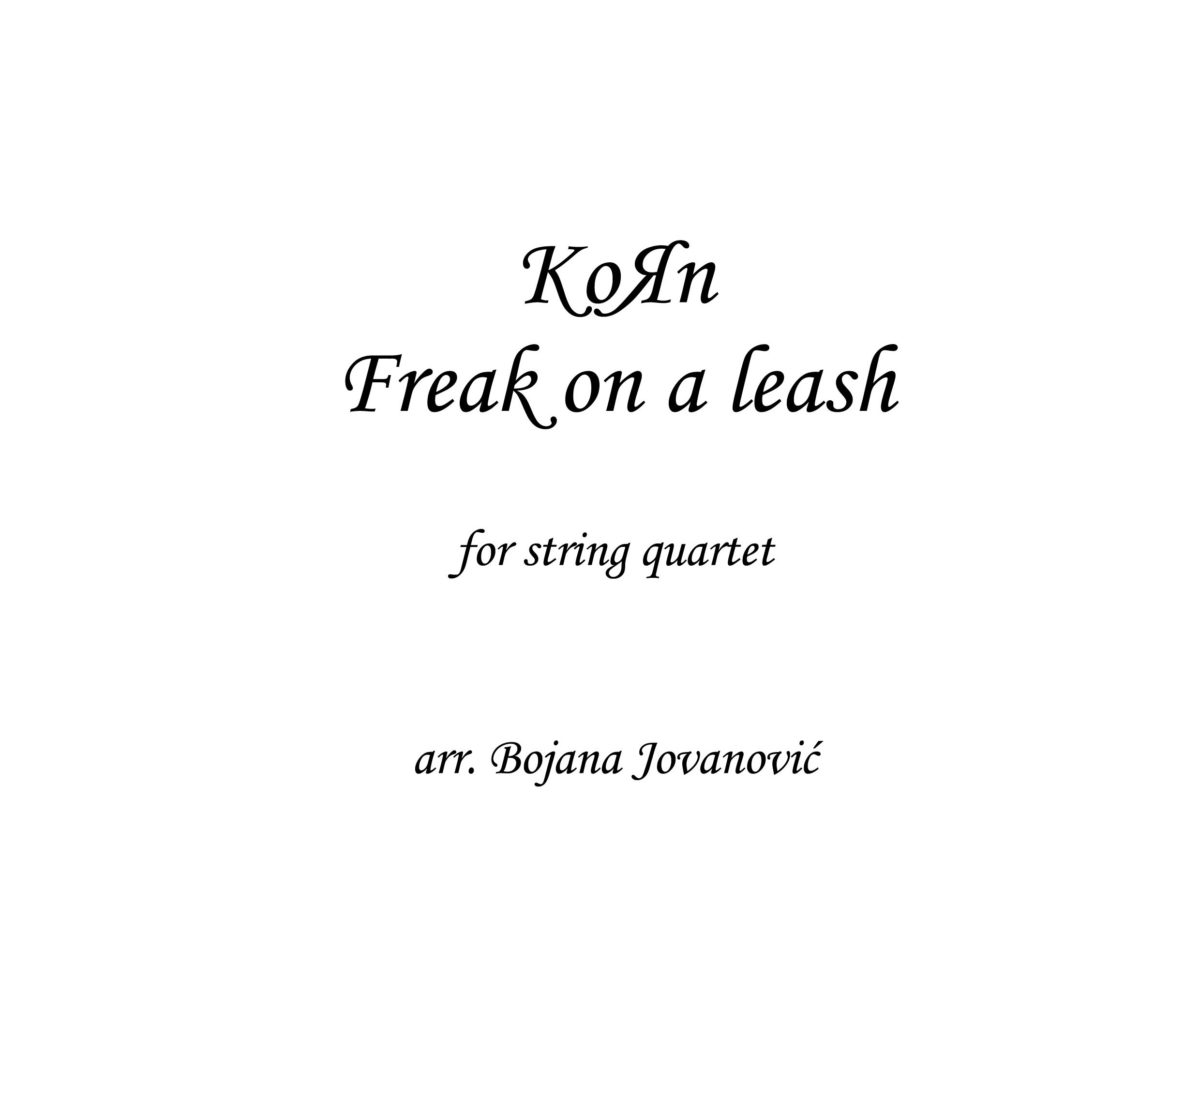 Freak on a leash (Korn) - Sheet Music